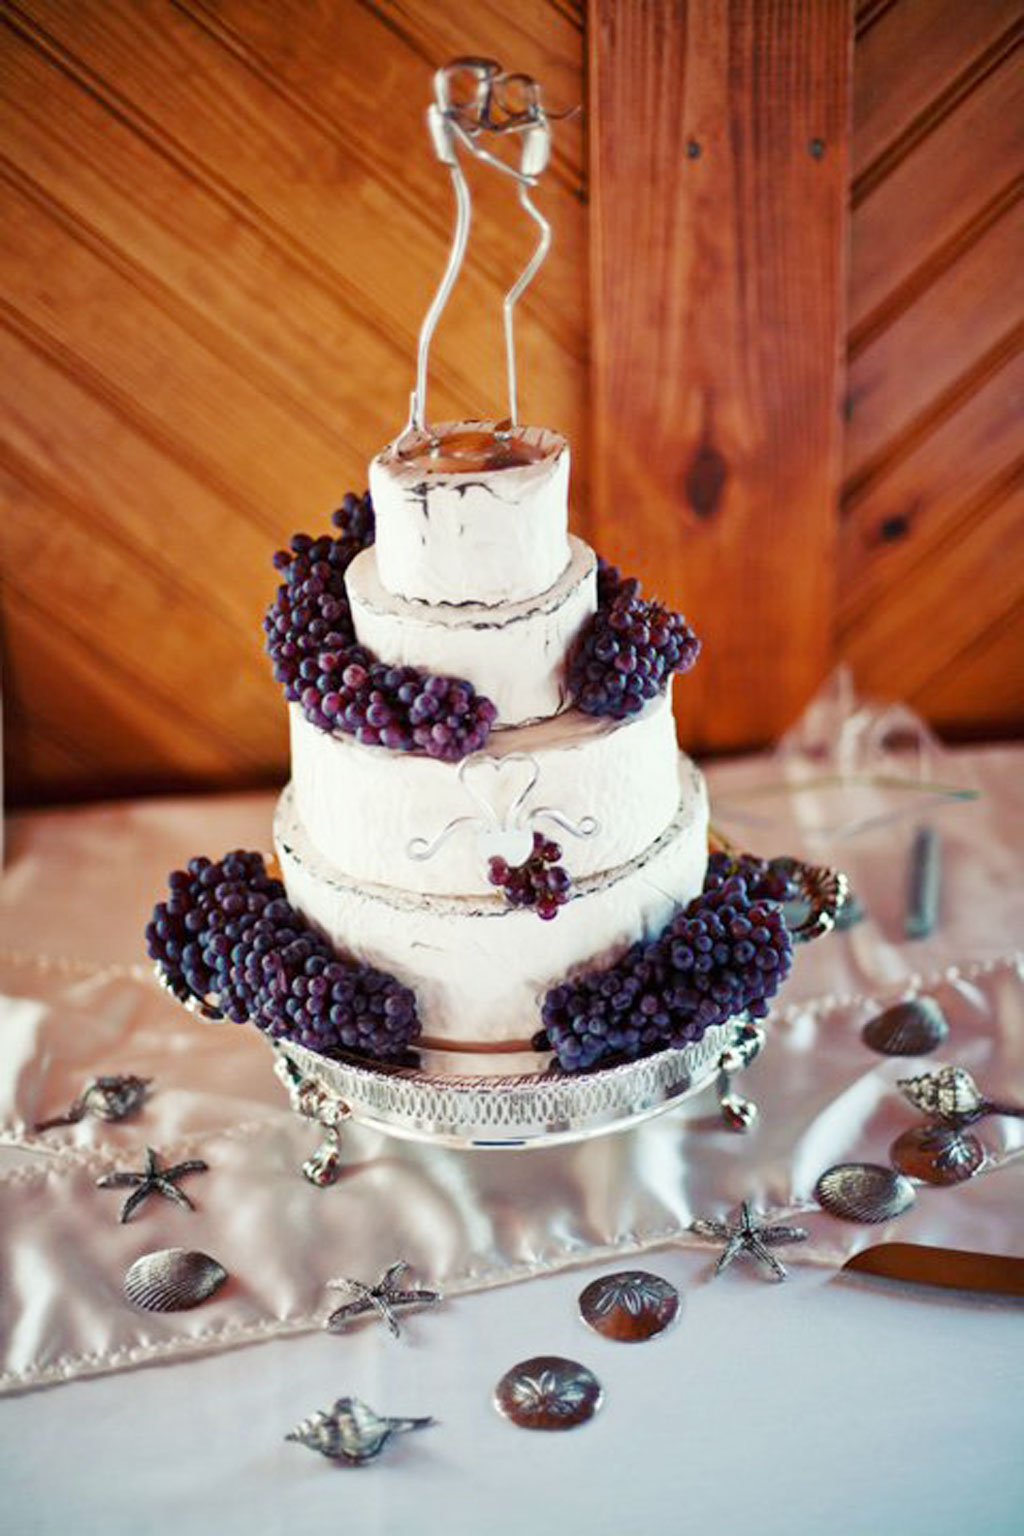 Harris Teeter Wedding Cakes 4 Picture In Cake